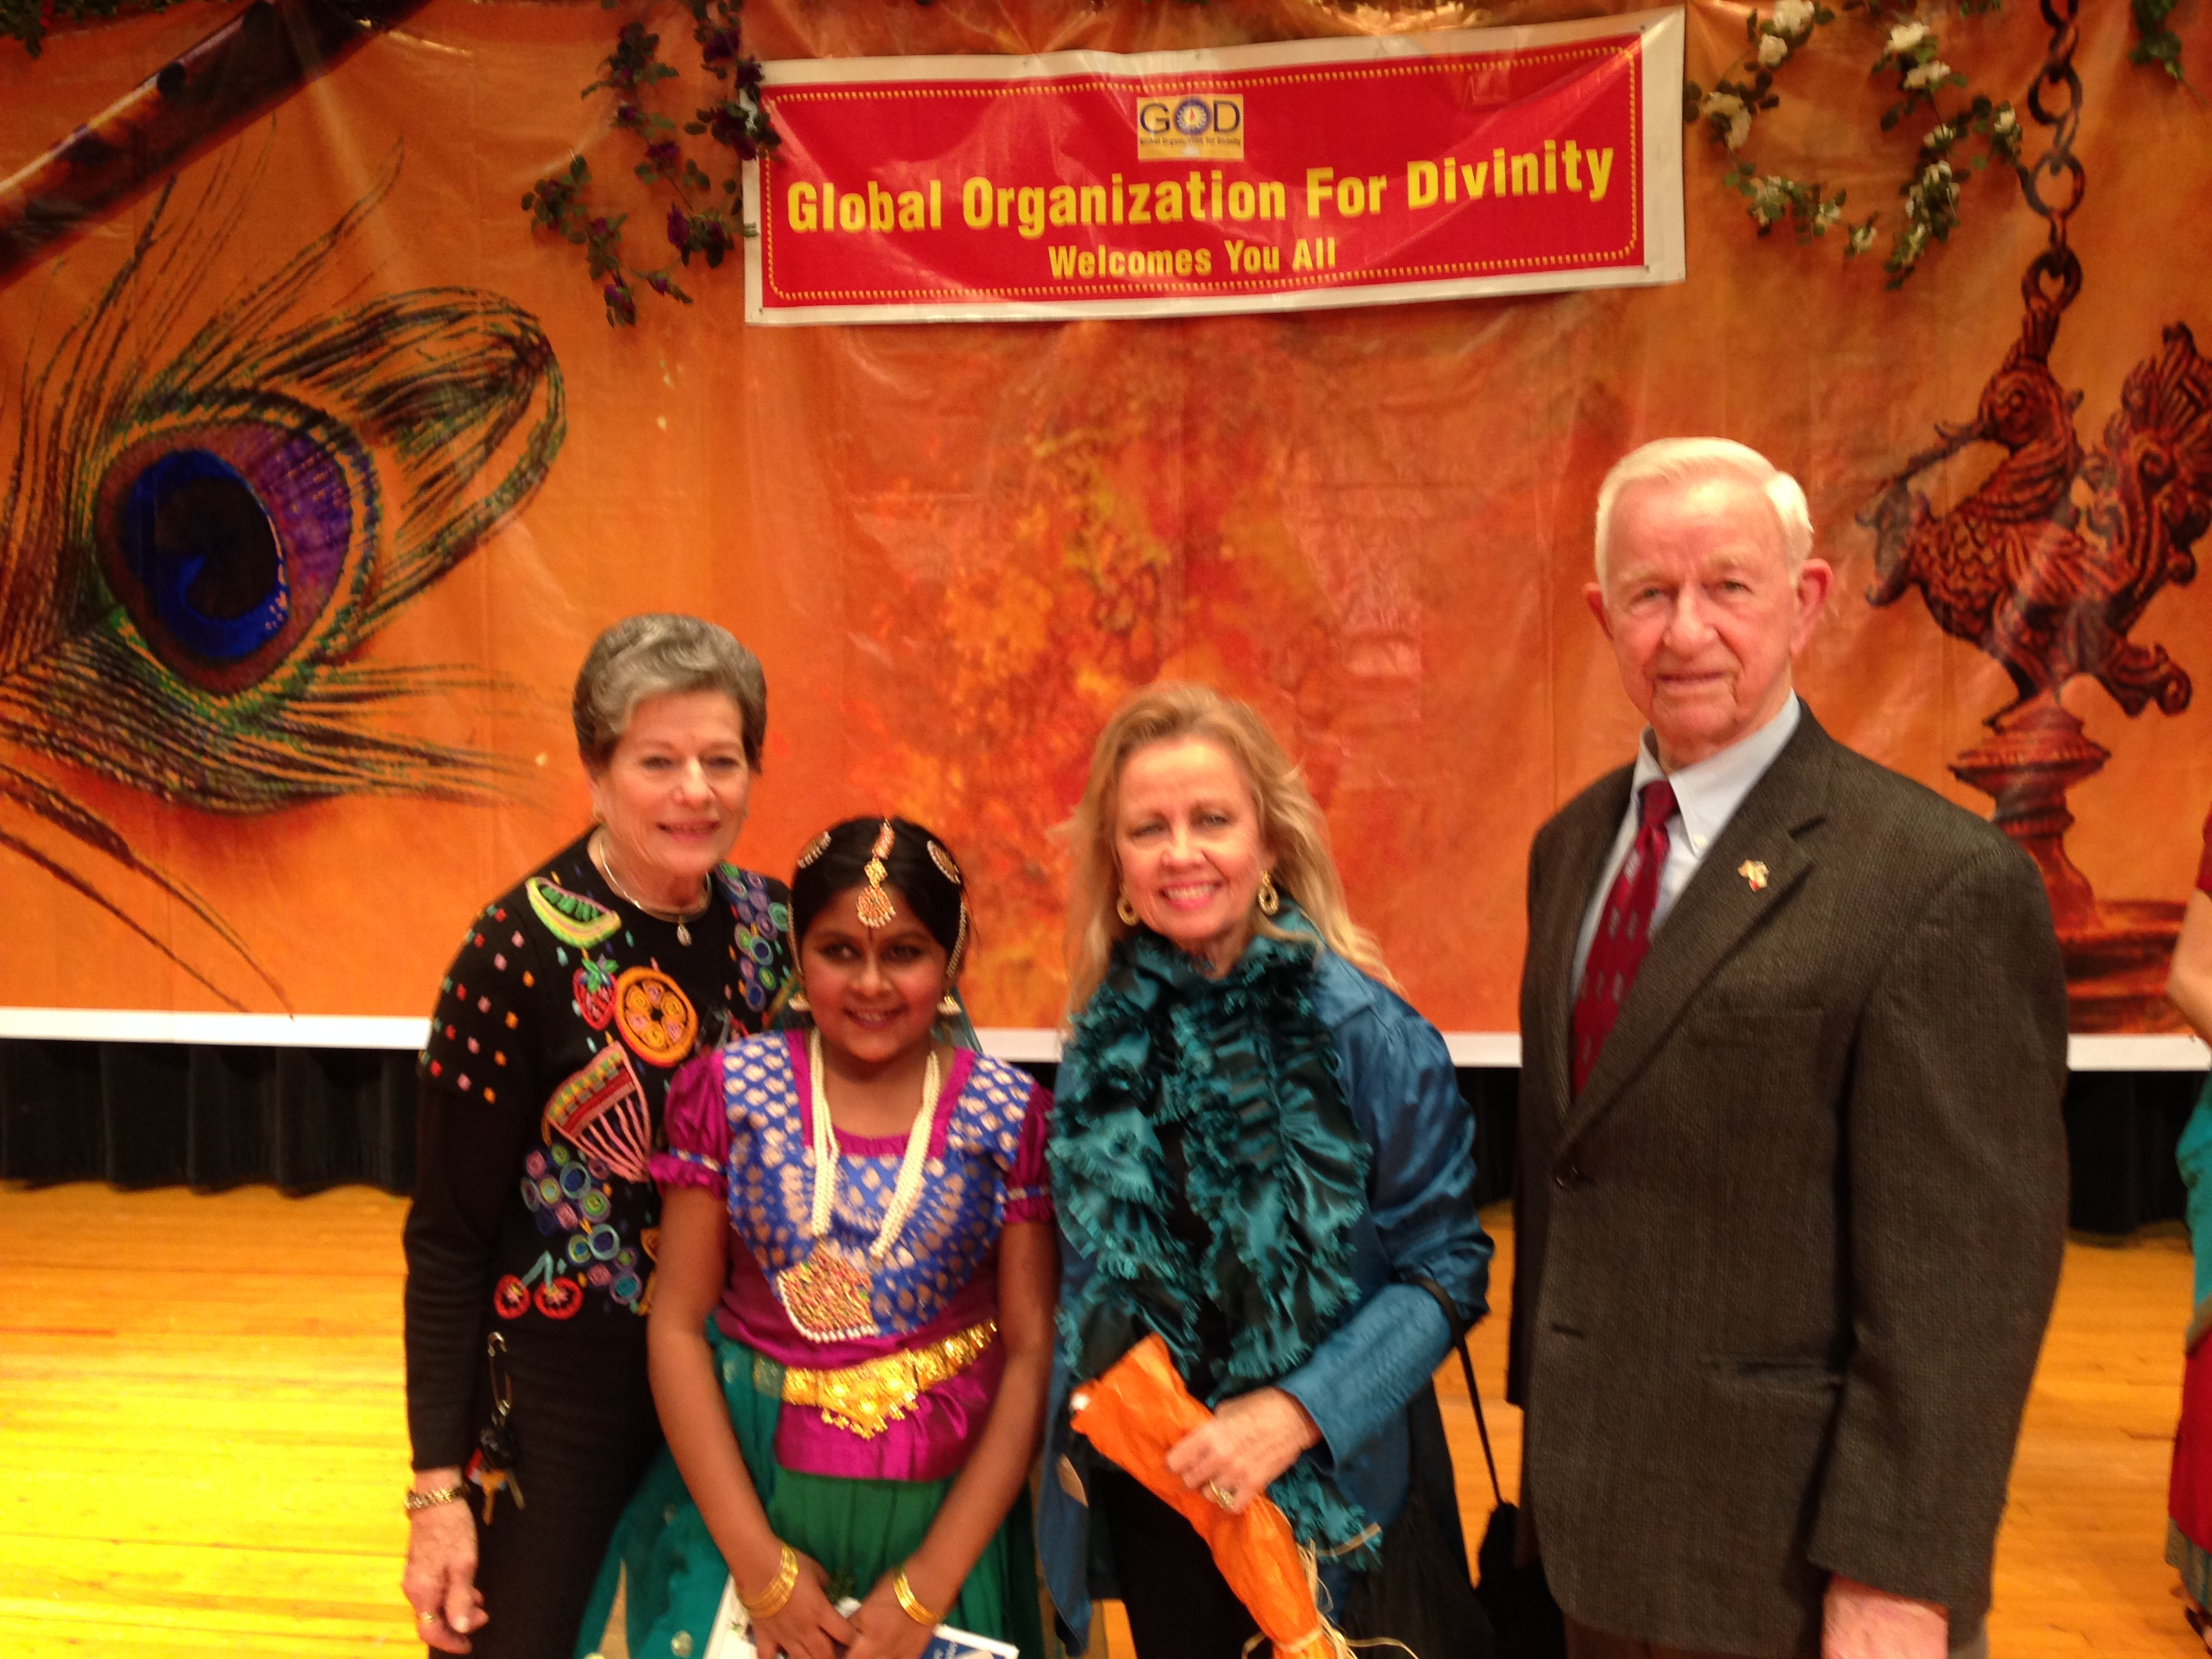 Posed photo of the mayor, an older man in a suit and tie, a woman and a young girl dressed in colorful garb